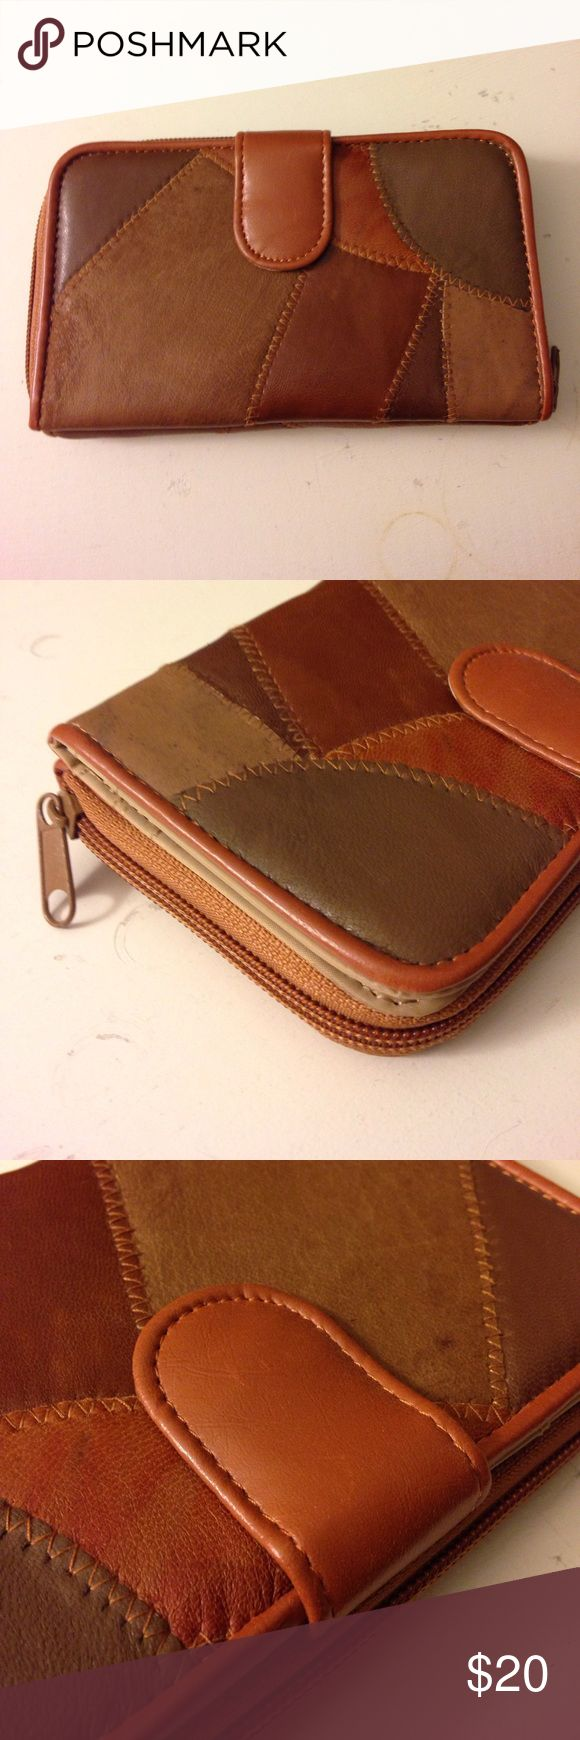 """Patches Wallet Never worn - like brand new. Many slots. Coin zipper. Two sides inside - one with snap button closure and other one is zipper as closure. Many different colors of brown. Measurement: 7"""" x 4"""" jcpenney Bags Wallets"""